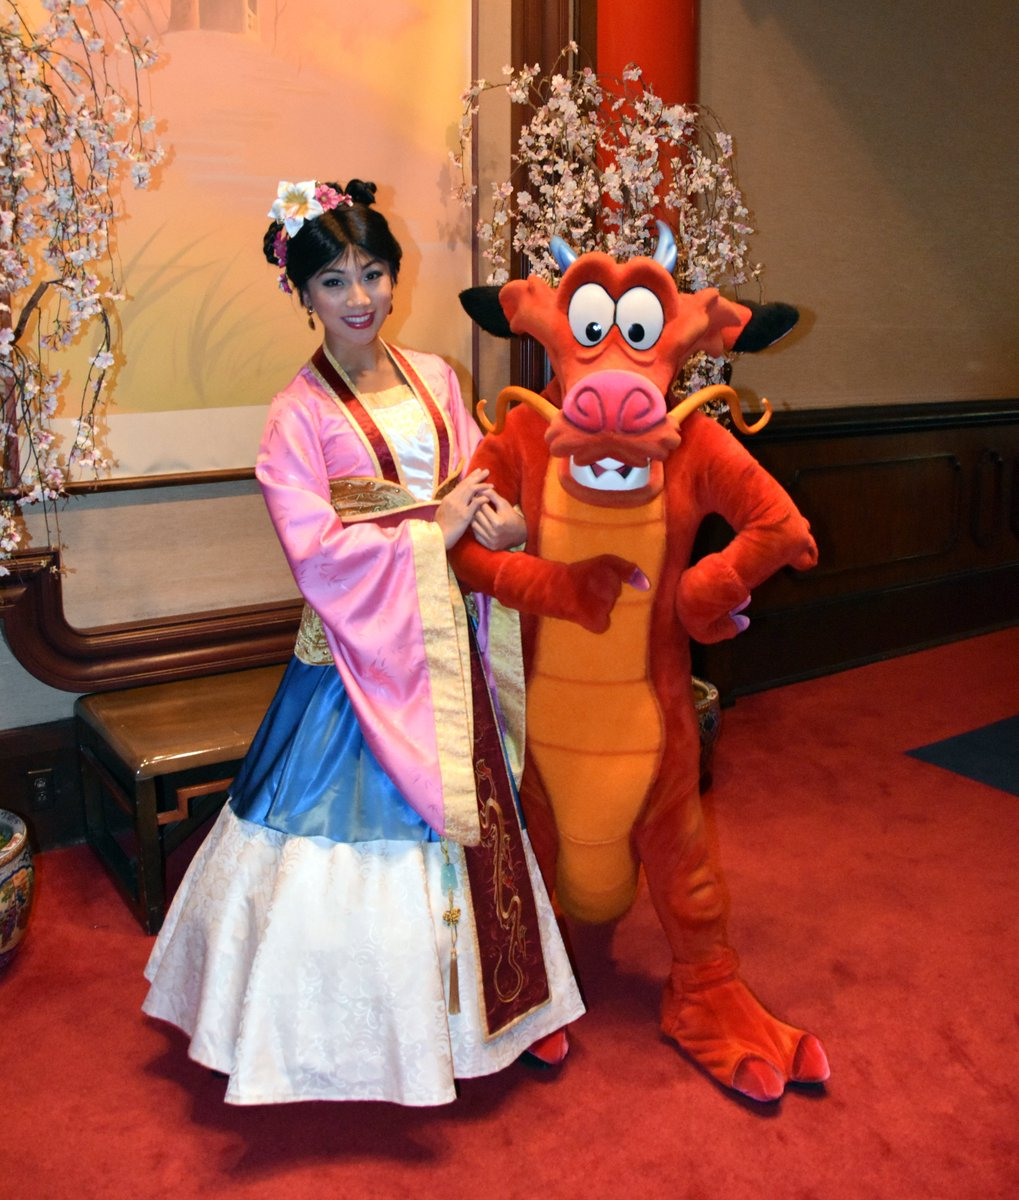 Jeff Lange On Twitter Video Mulan Mushu Meet Greet At